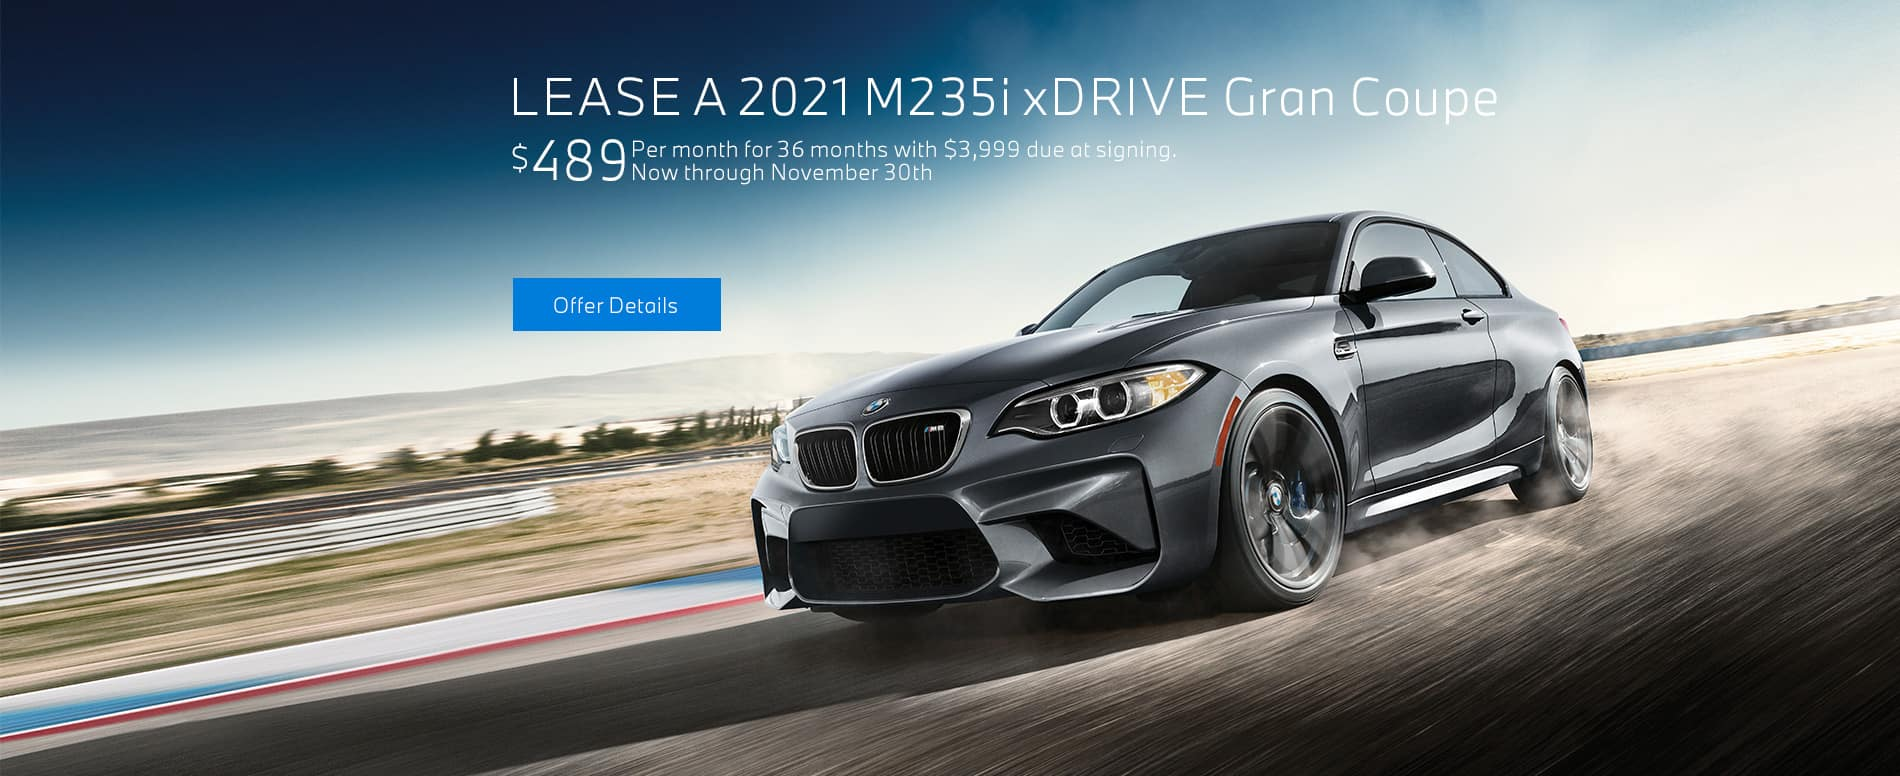 LEASE A 2021 M235i xDRIVE GRAN COUPE